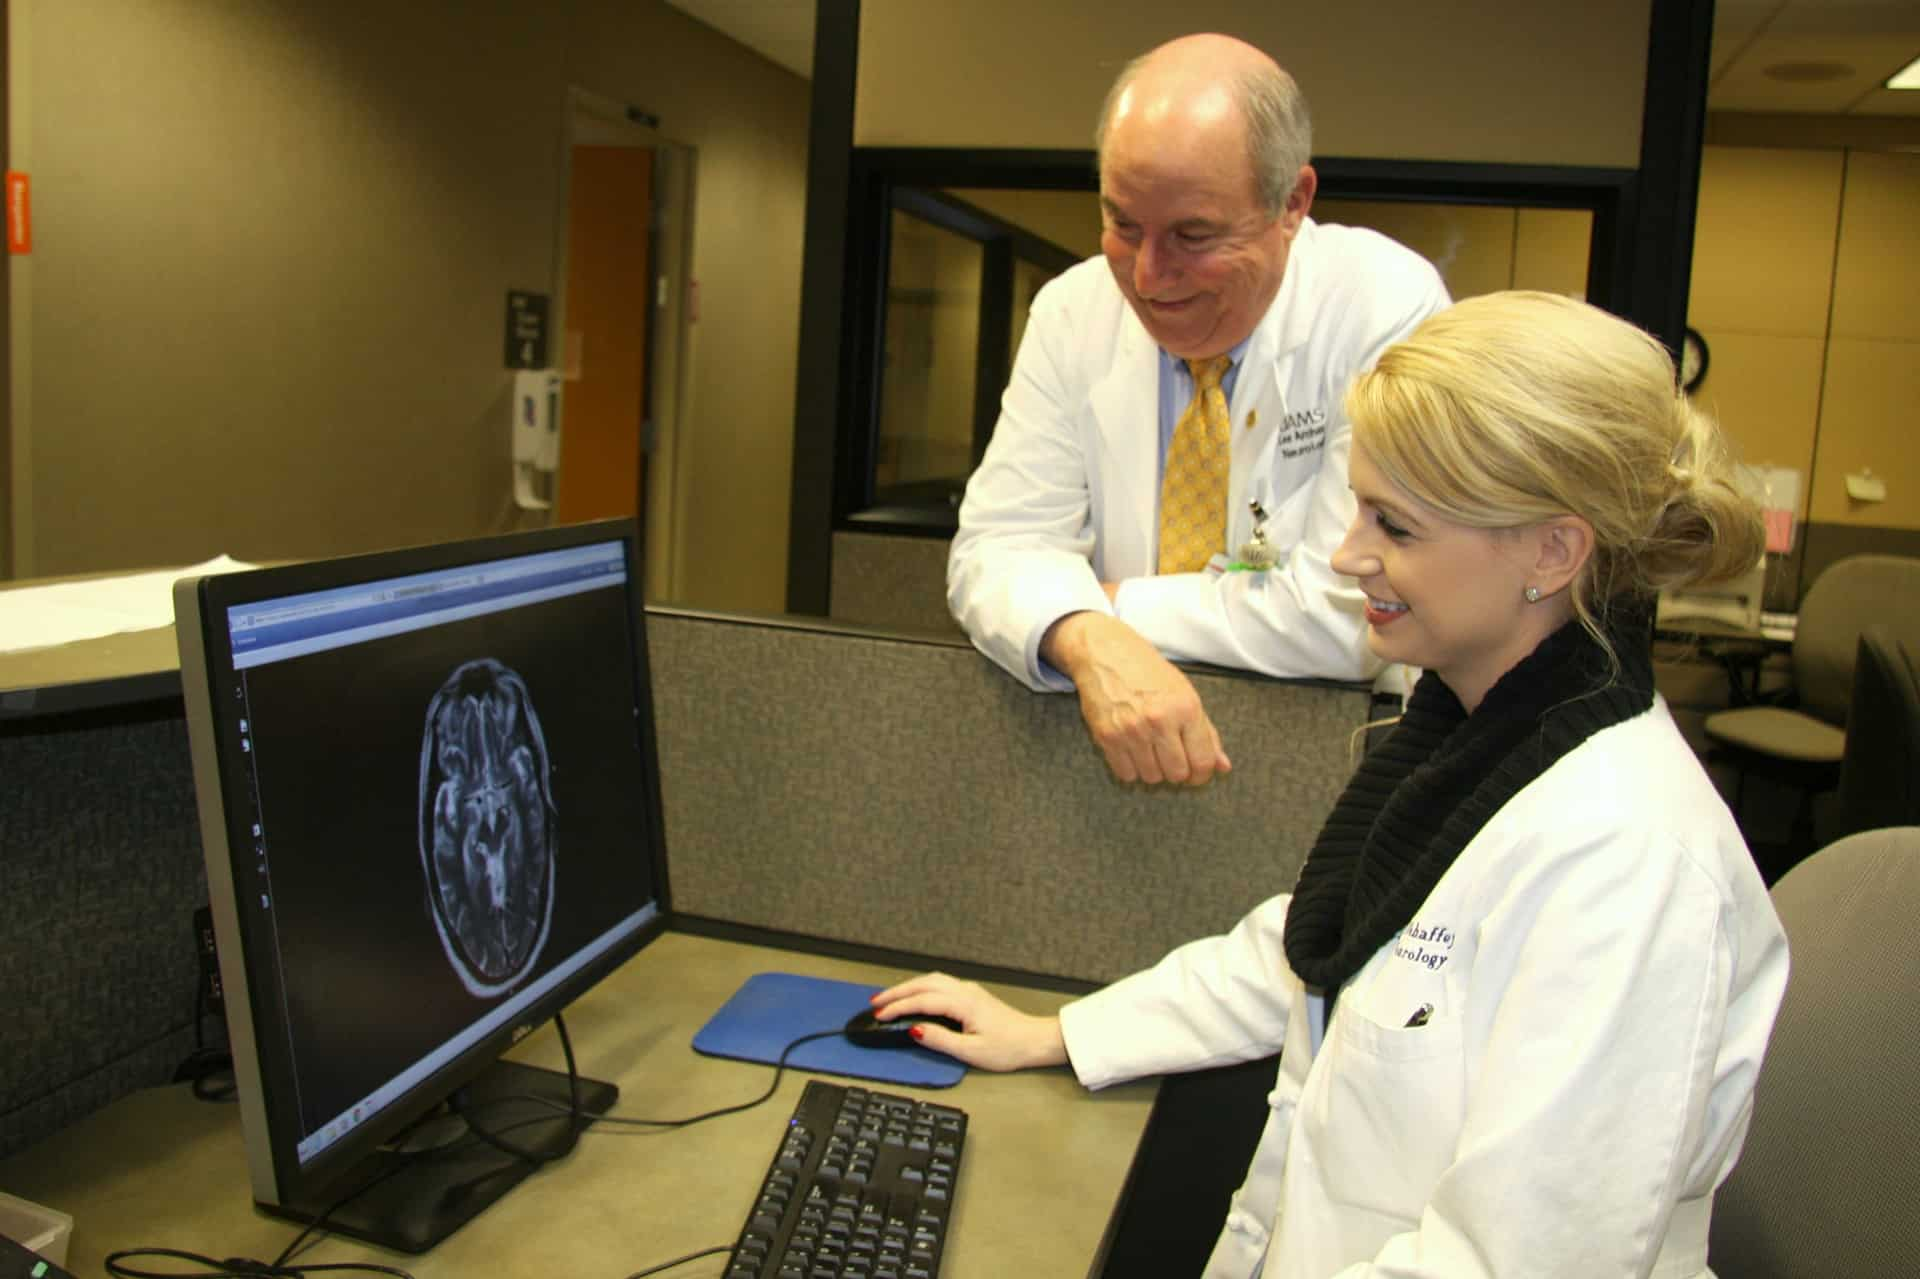 Two doctors look at brain scan